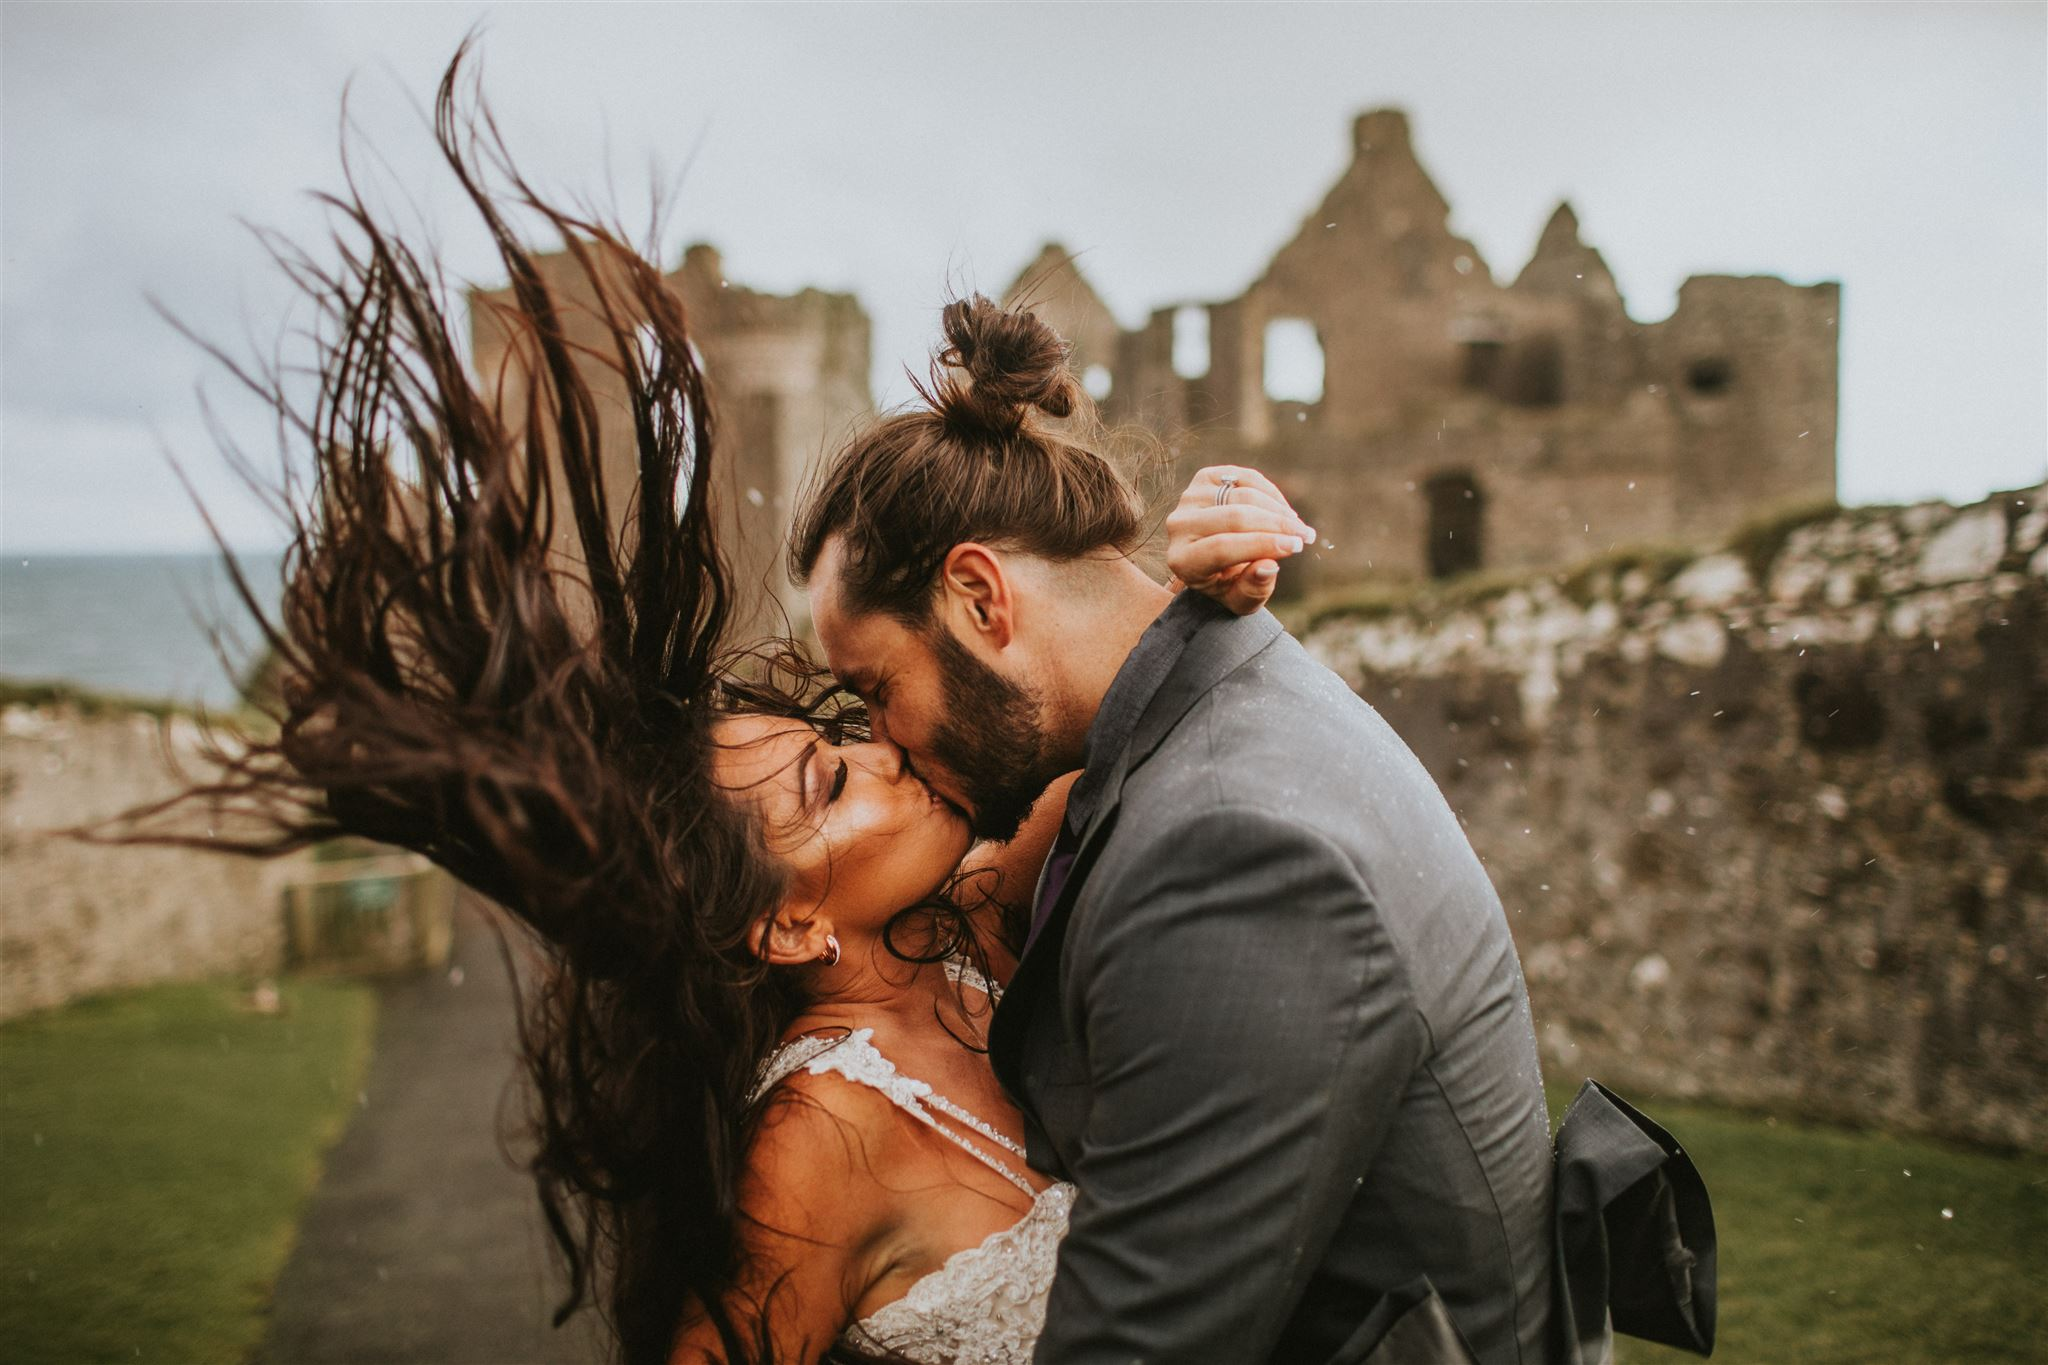 One of the best places to elope in Europe is Dunluce Castle, where this bride's long brown hair blows in the wind as she kisses her groom in front it.